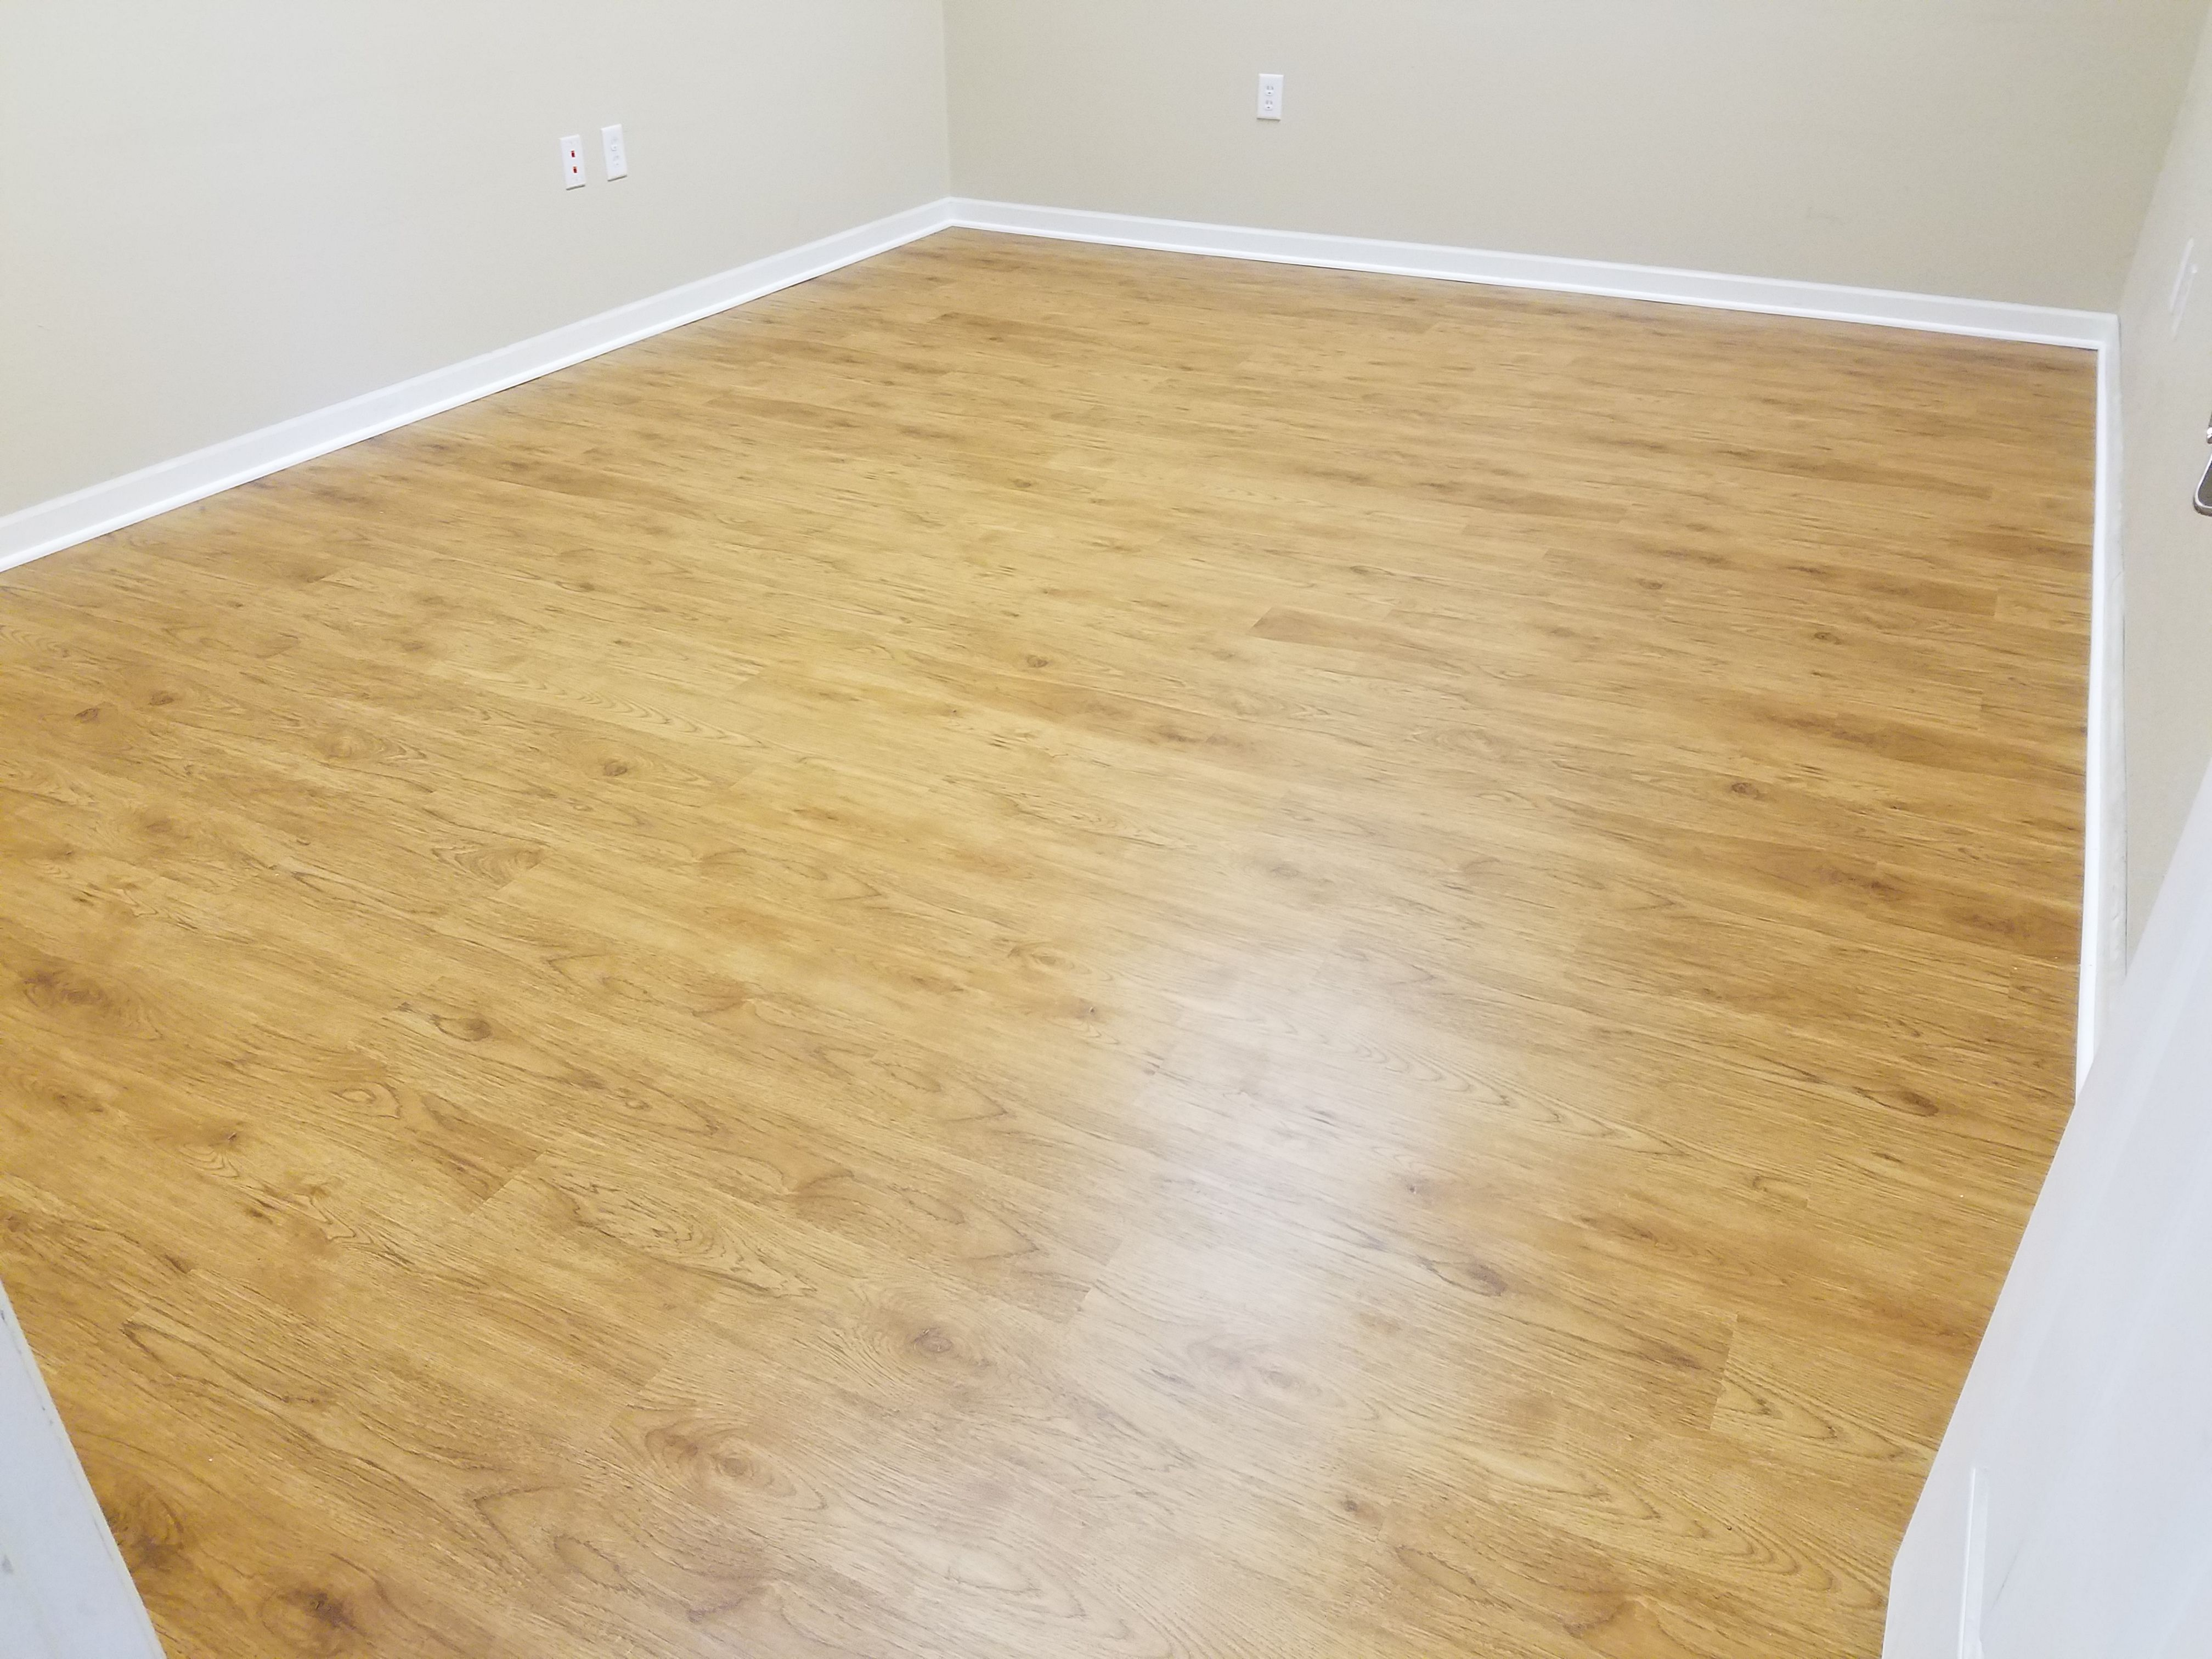 Perfekt Natural Living Collection In Sahara Hickory Color! Welcome To Floor  Coverings International Waukesha! We